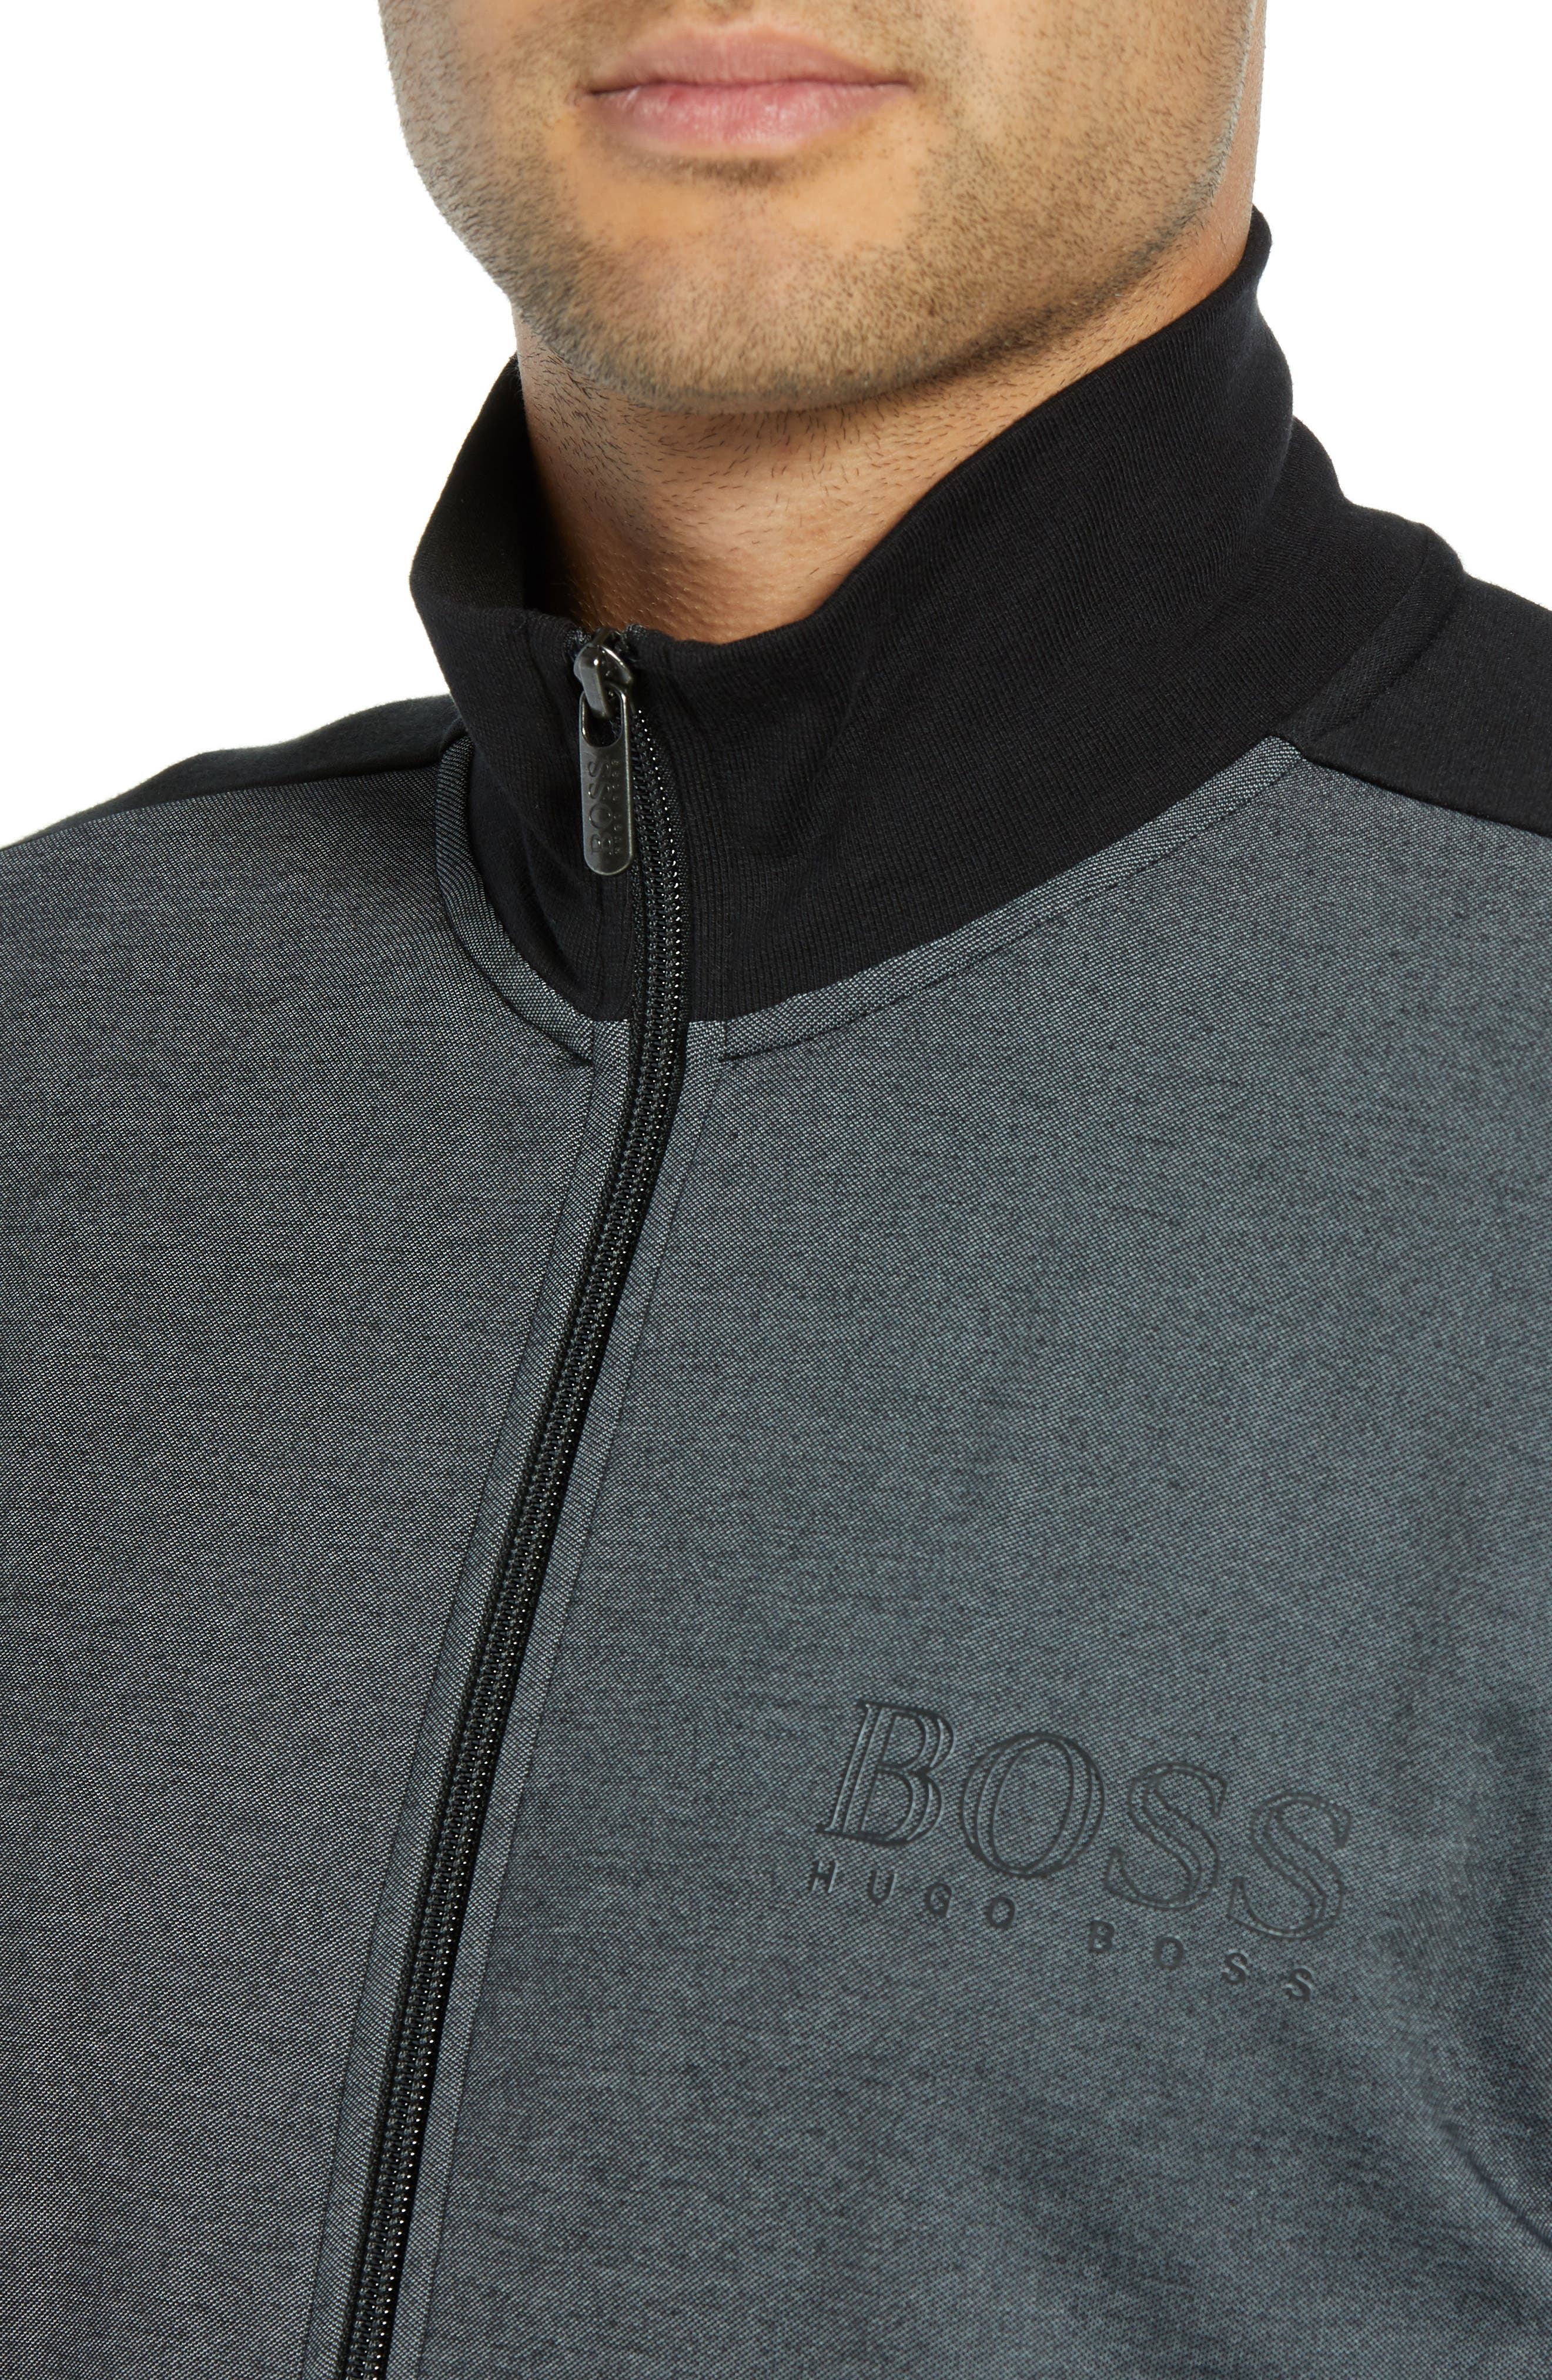 Cotton Blend Track Jacket,                             Alternate thumbnail 4, color,                             BLACK